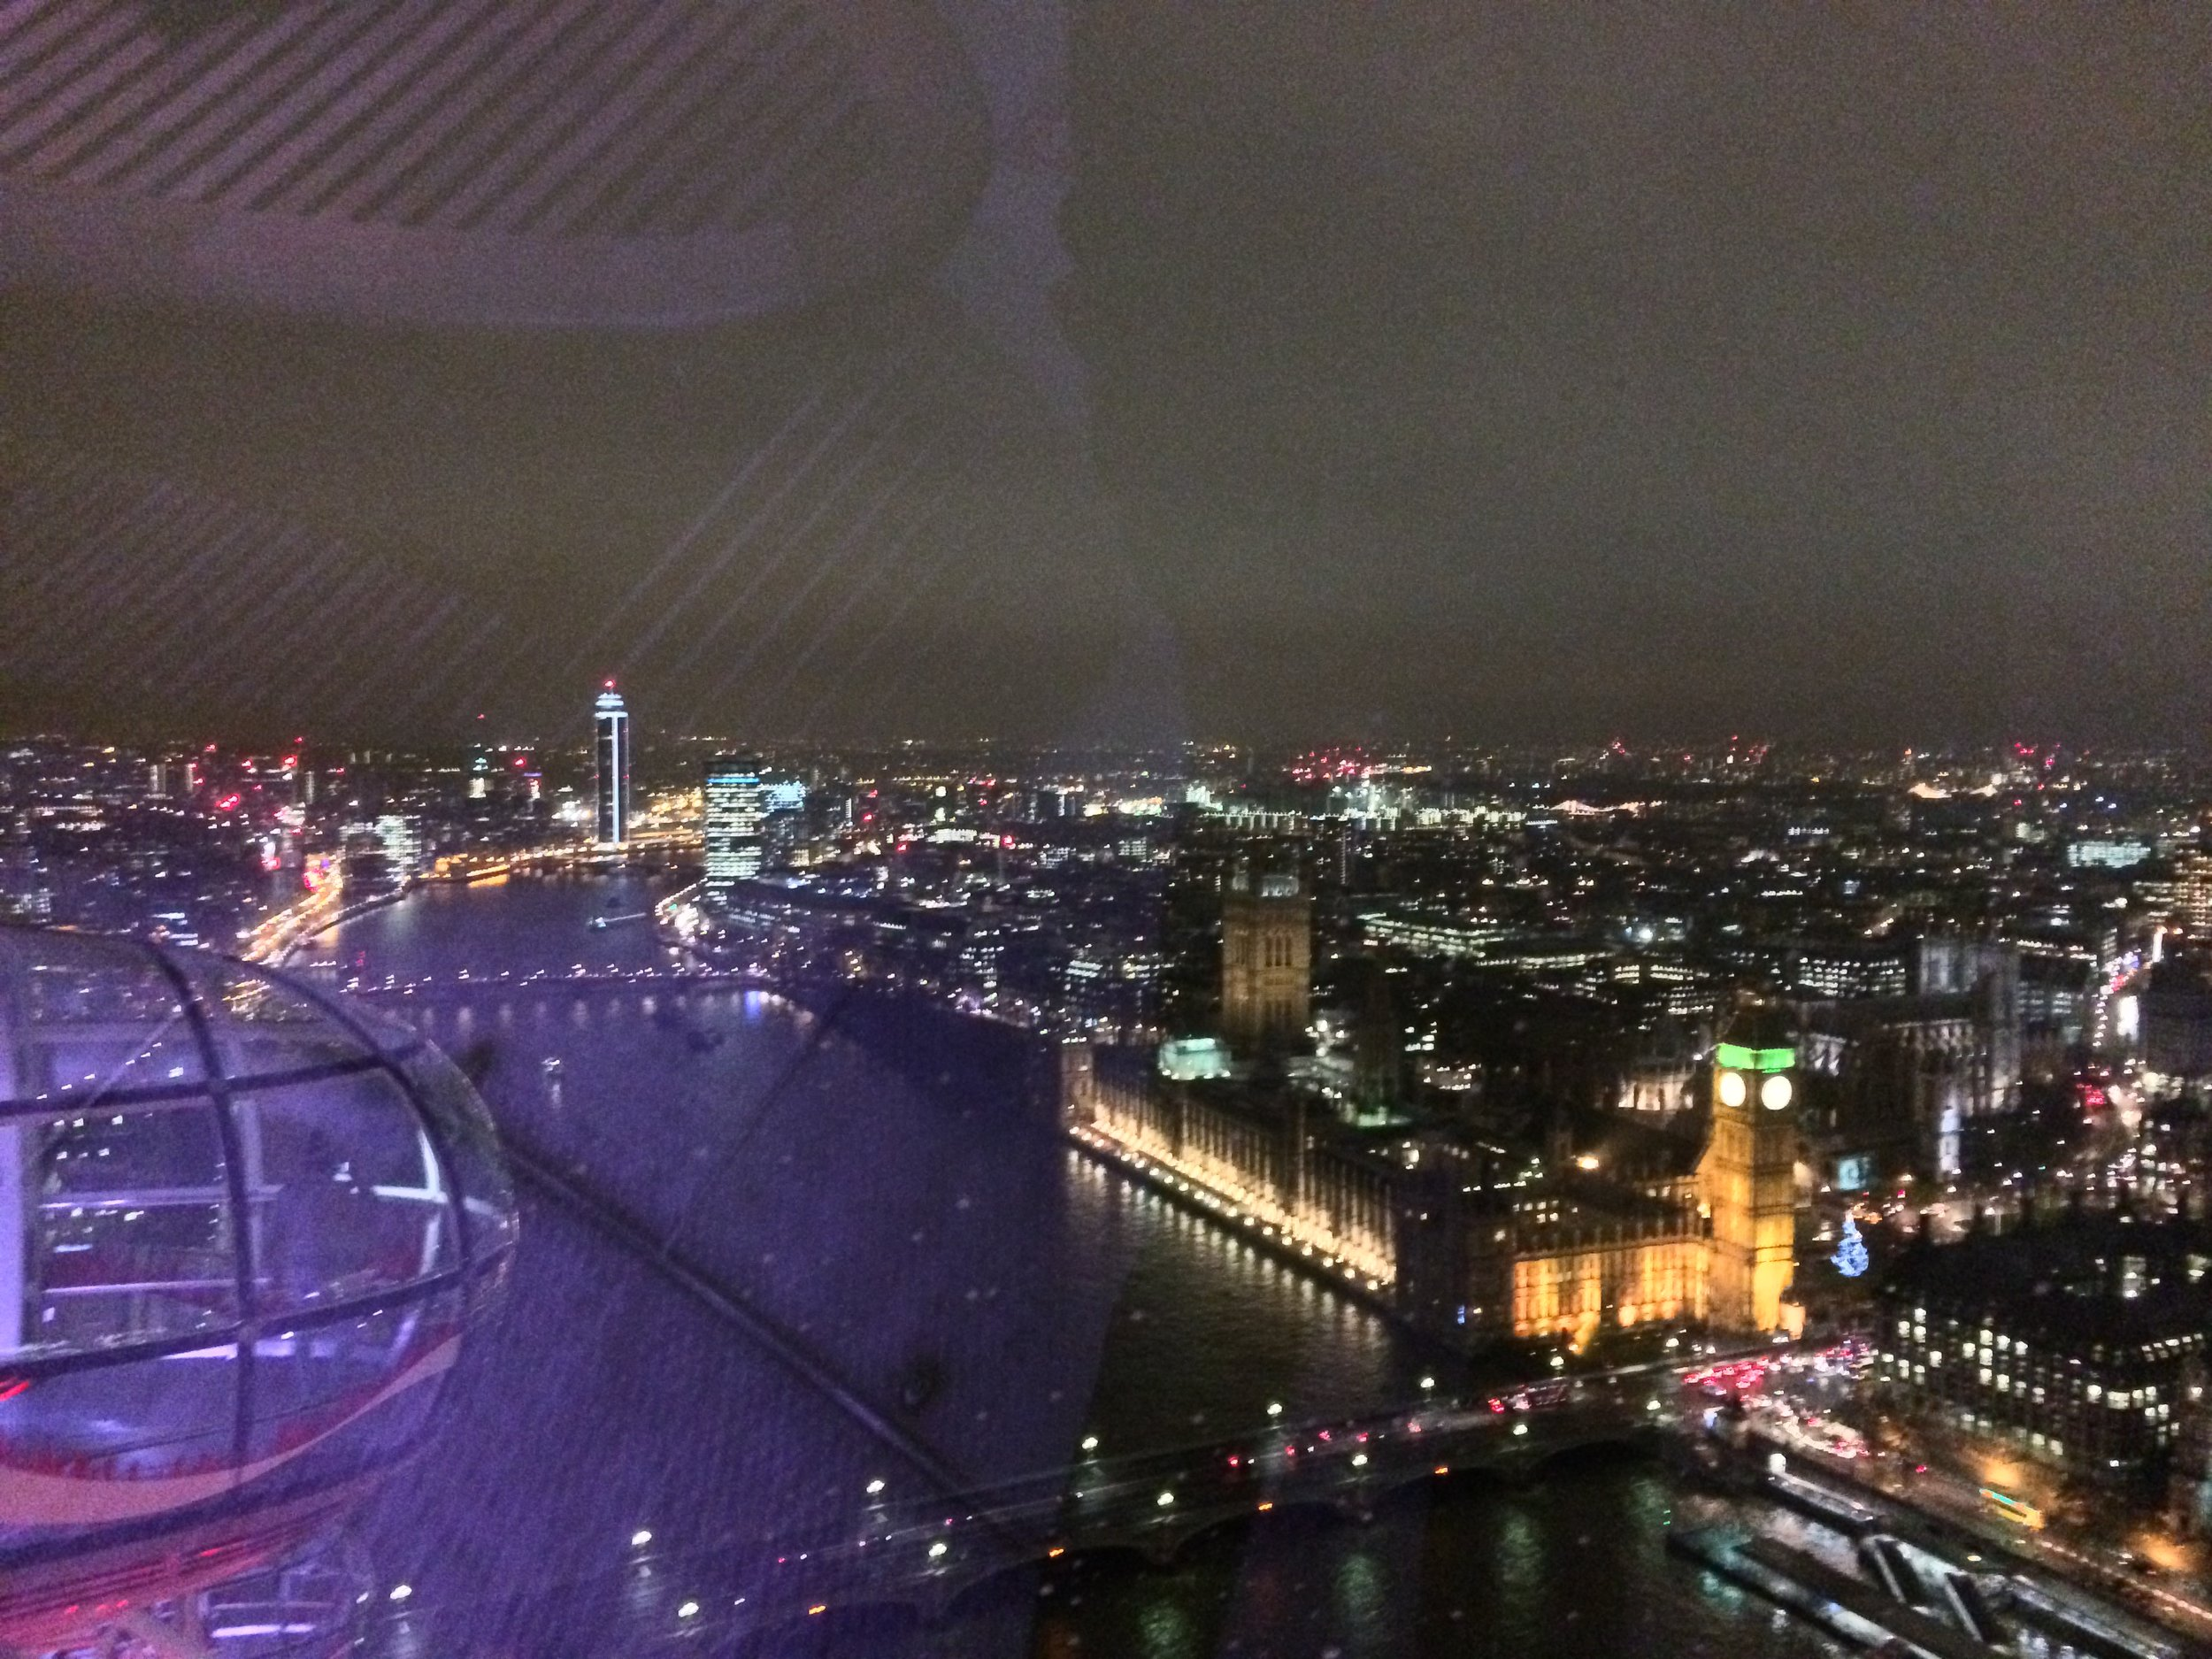 The Eye has great views of Big Ben, and the Westminster region overall.